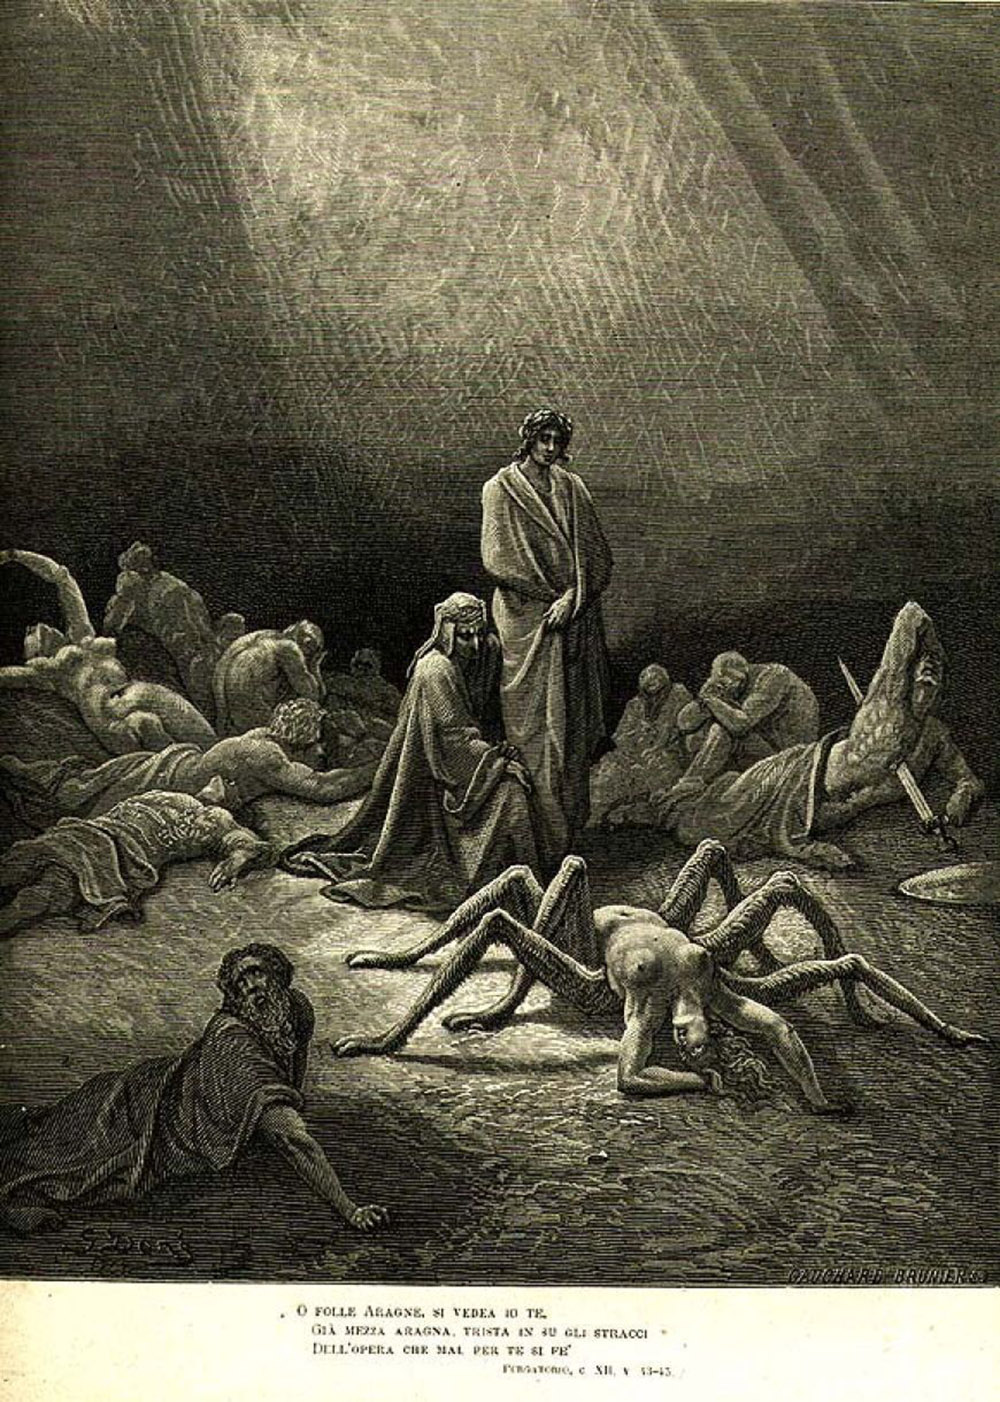 A depiction of the punishment of Arachne, showing a woman turning into a spider.